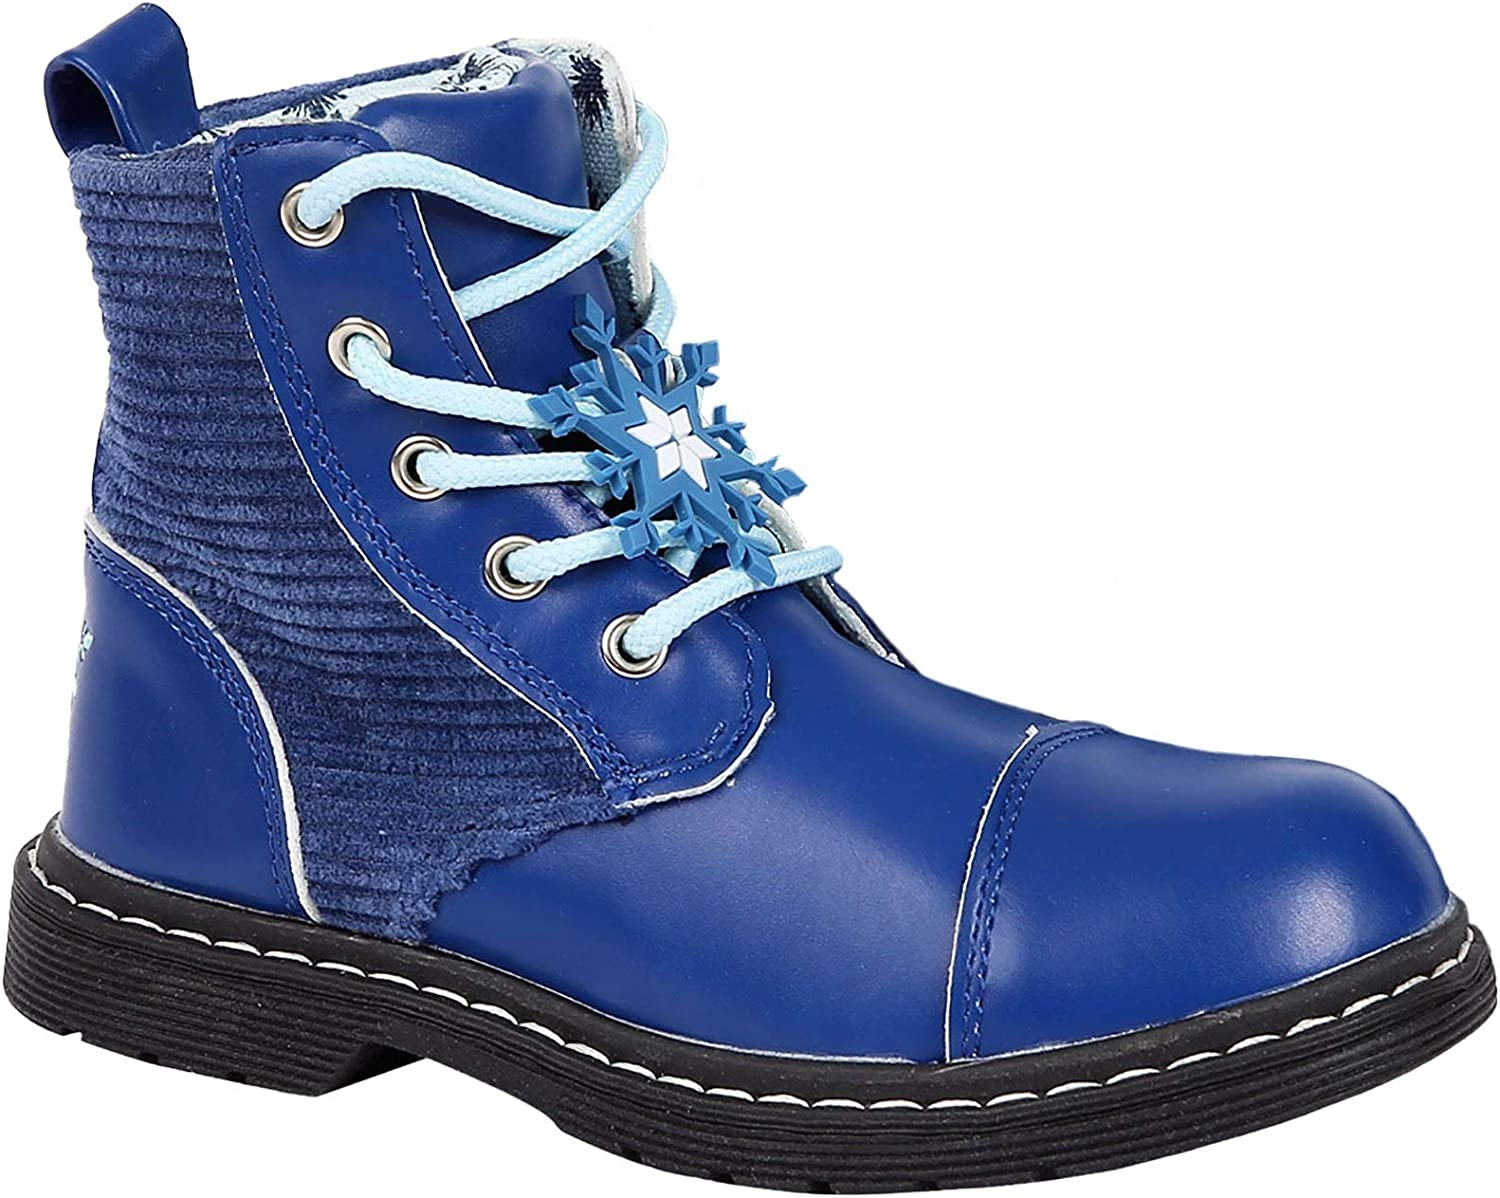 Shipping included Frozen 2 Elsa Max 43% OFF Girl's Boot